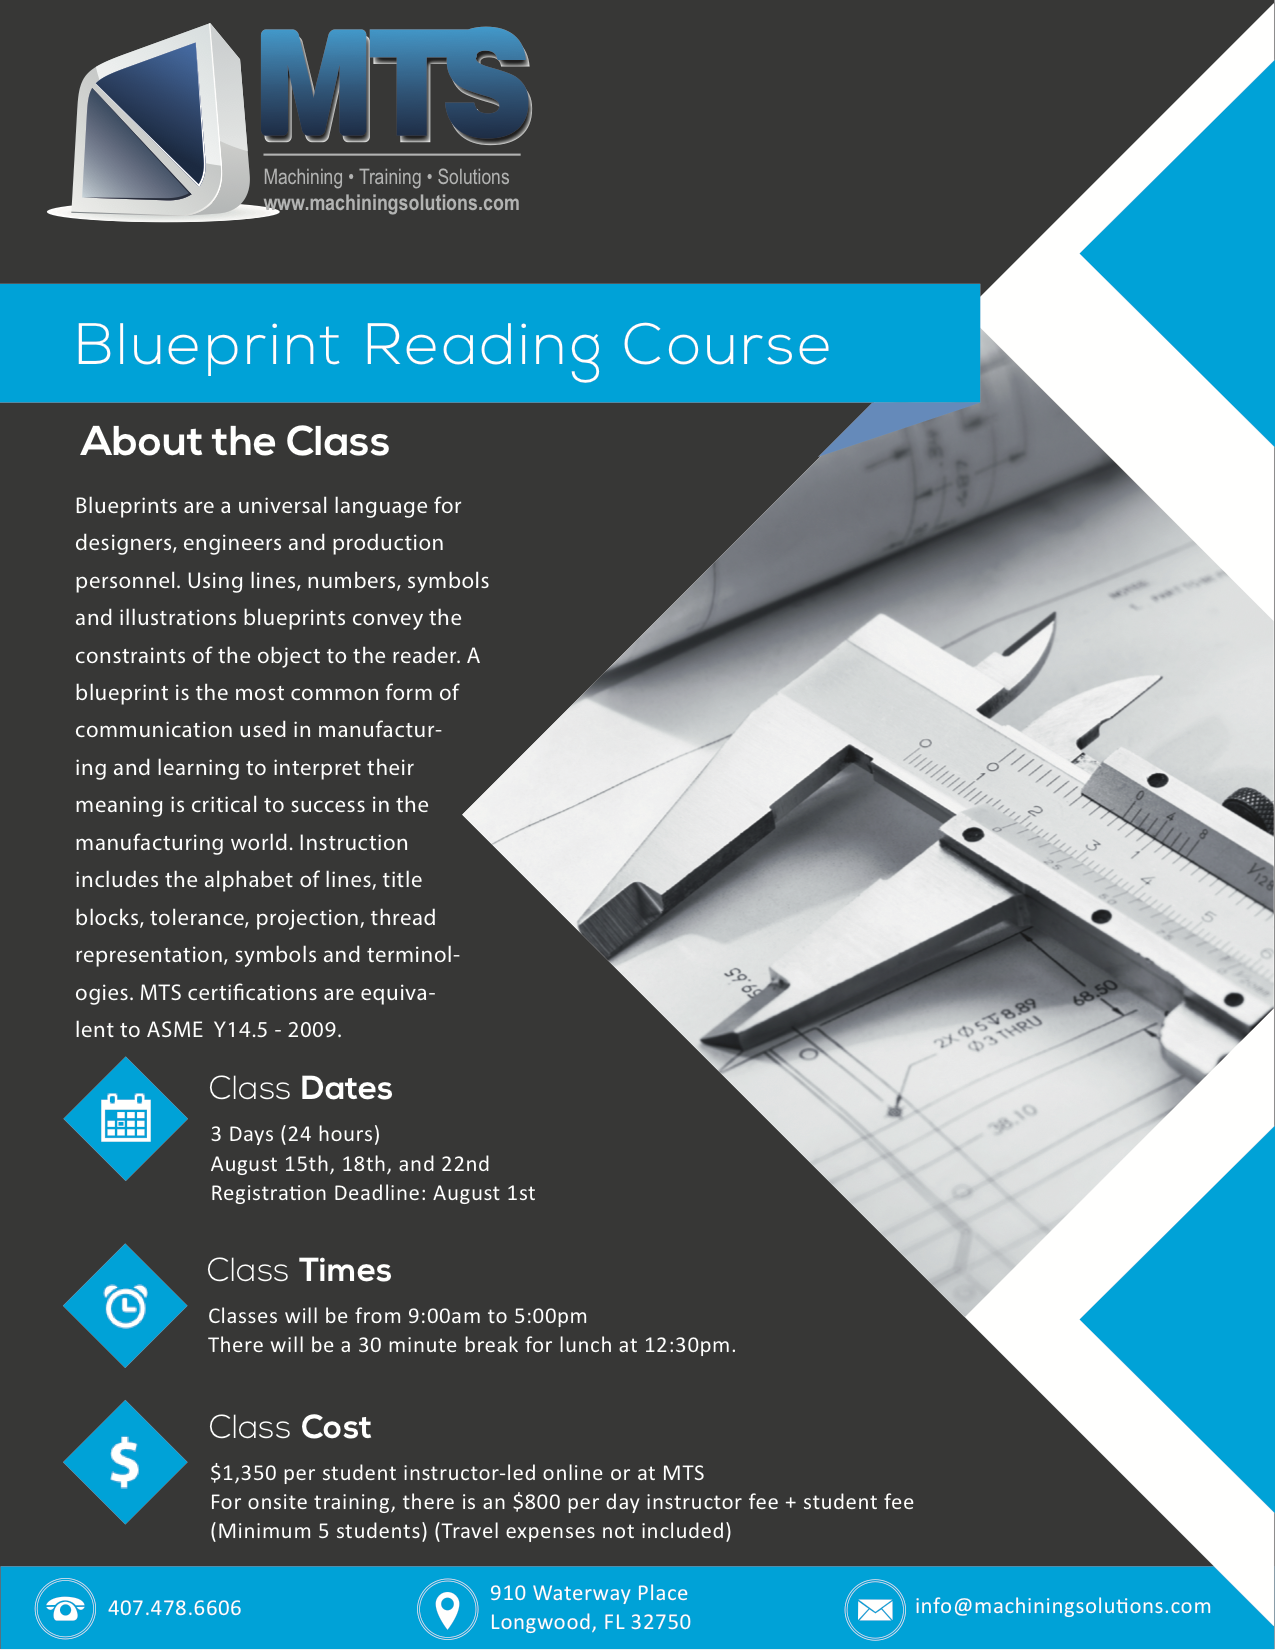 Machining training solutions How do you read blueprints